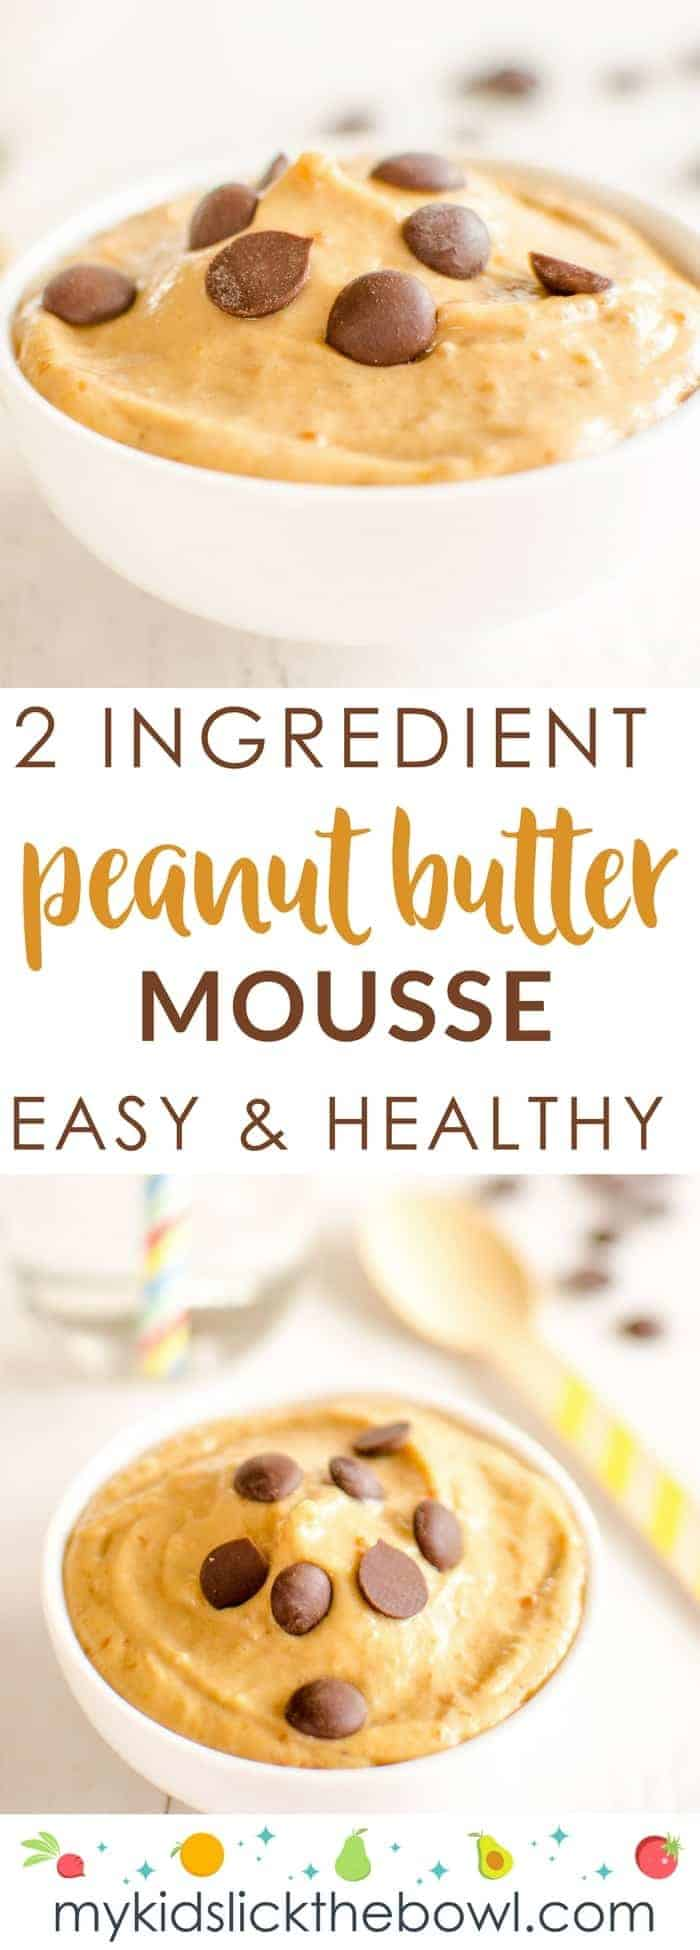 Easy healthy peanut butter mousse is a 2 ingredient vegan recipe that makes a perfect dessert for kids or an energy dense purée for babies